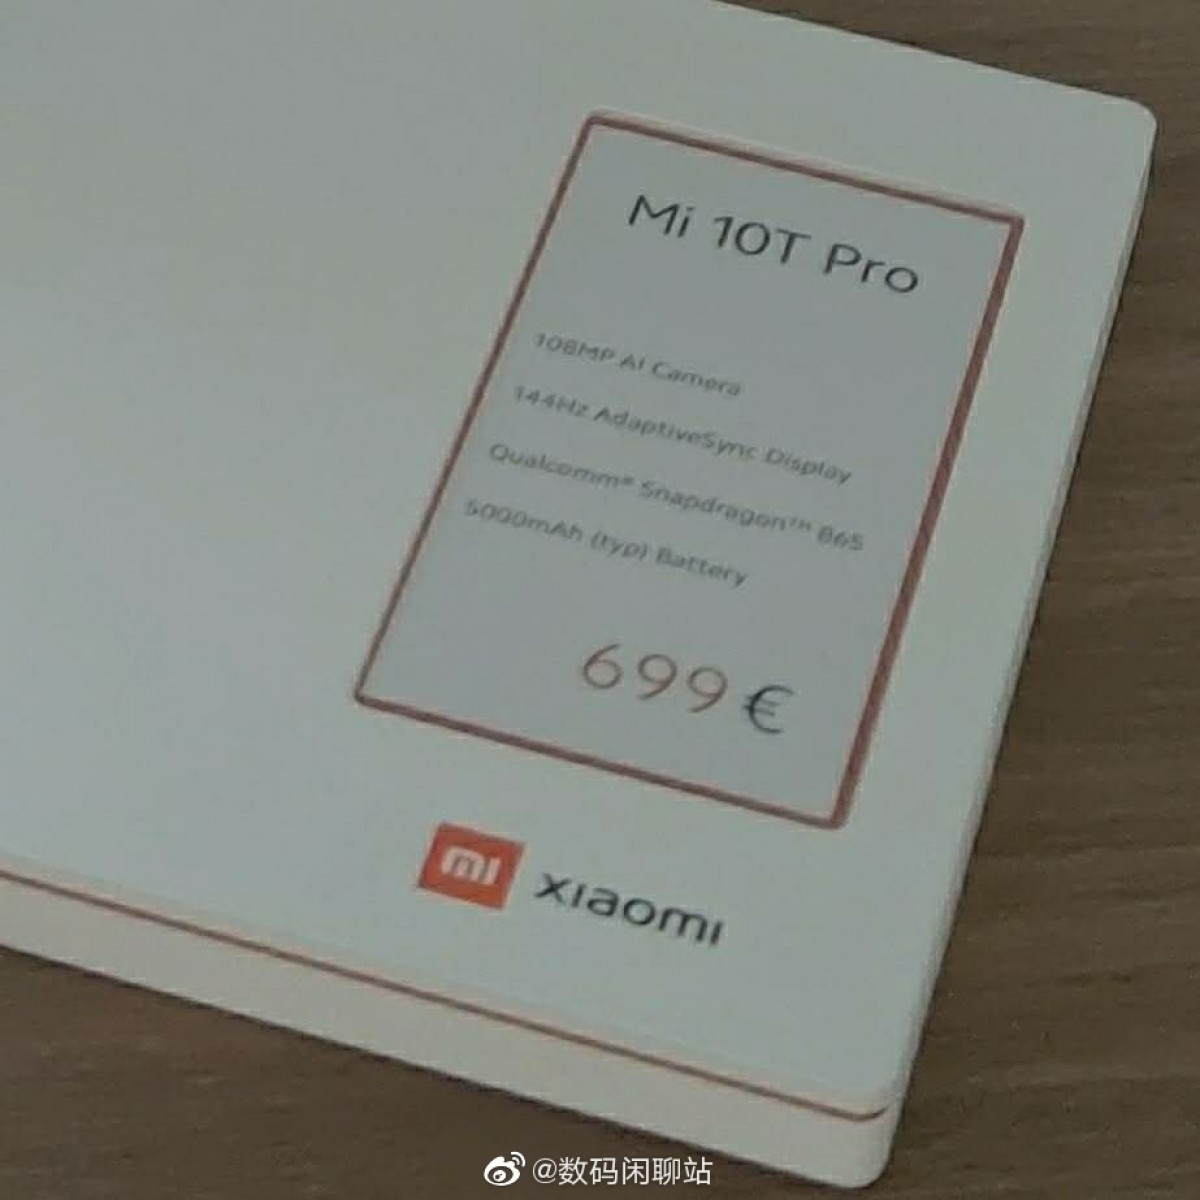 Xiaomi Mi 10T Pro to arrive in Europe, to cost €699